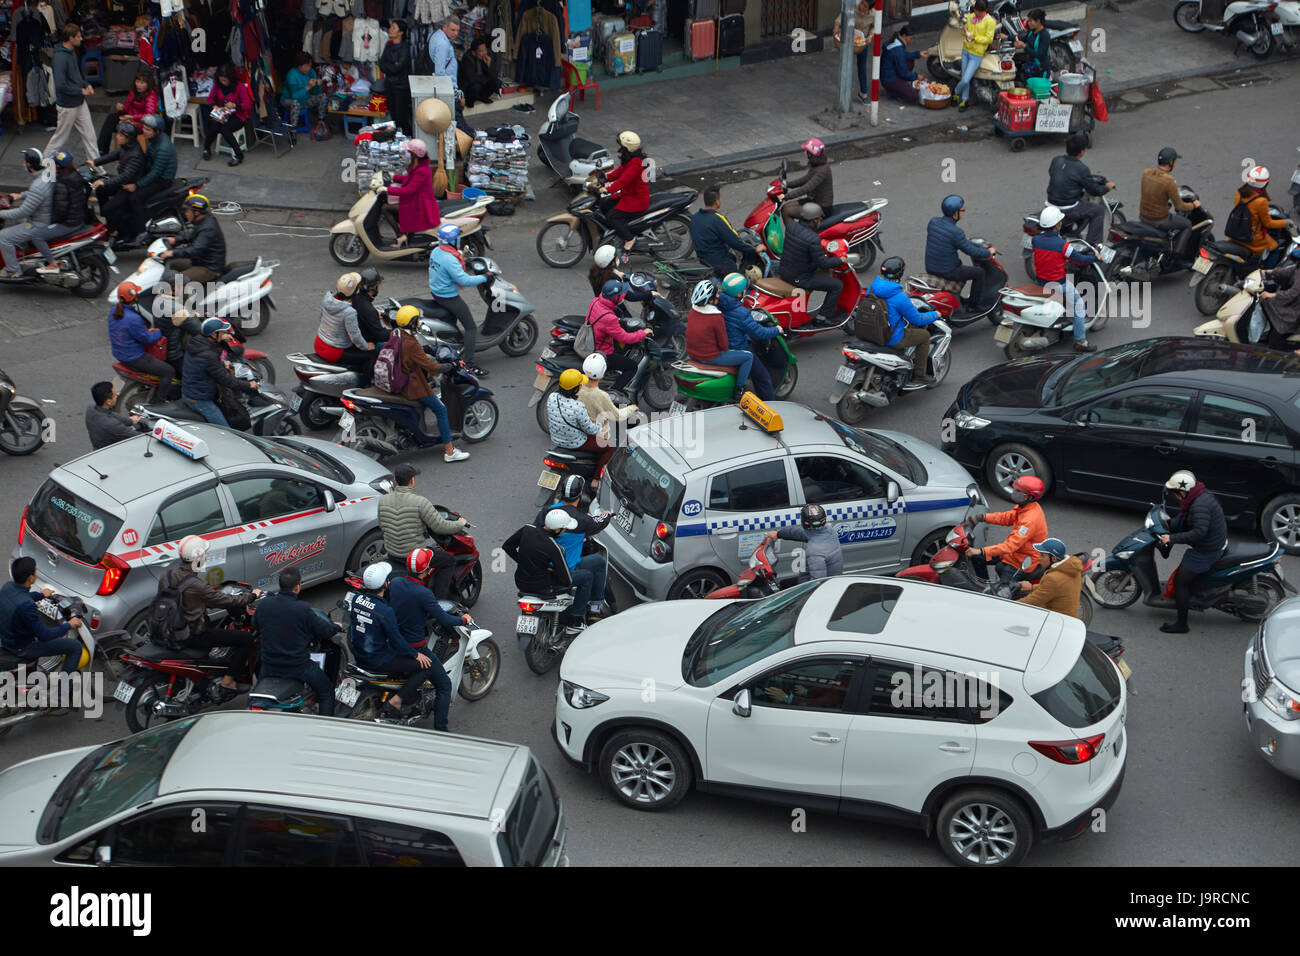 Crazy traffic at busy intersection by Hoan Kiem Lake and Old Quarter, Hanoi, Vietnam - Stock Image